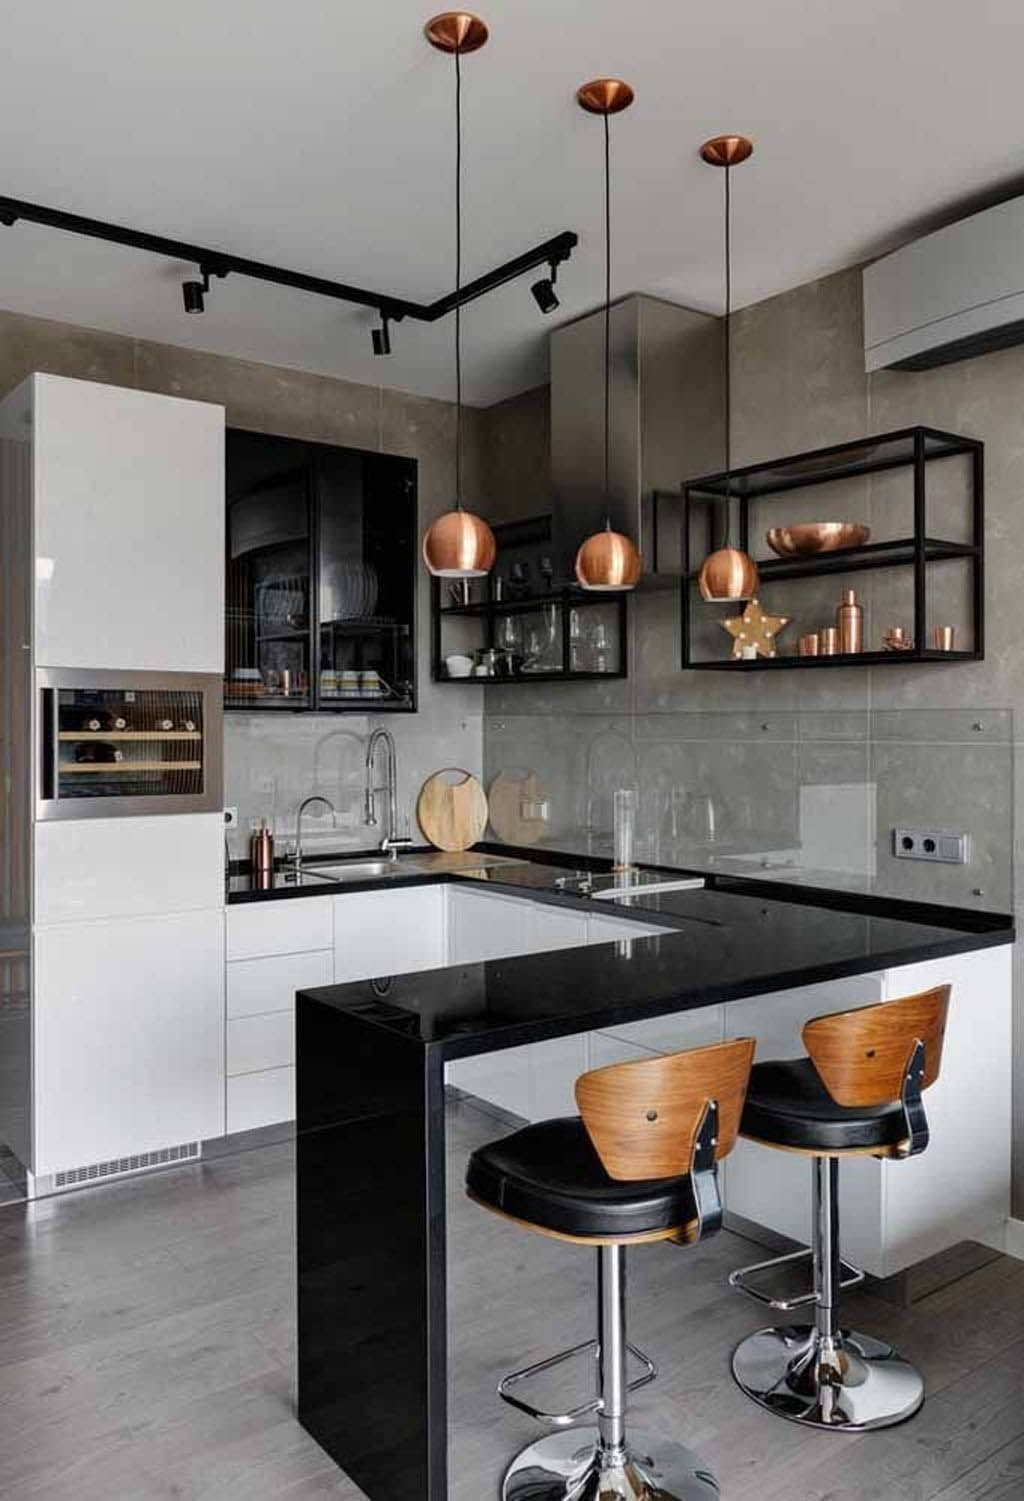 Brilliant modern kitchen accessories ideas only on this ...